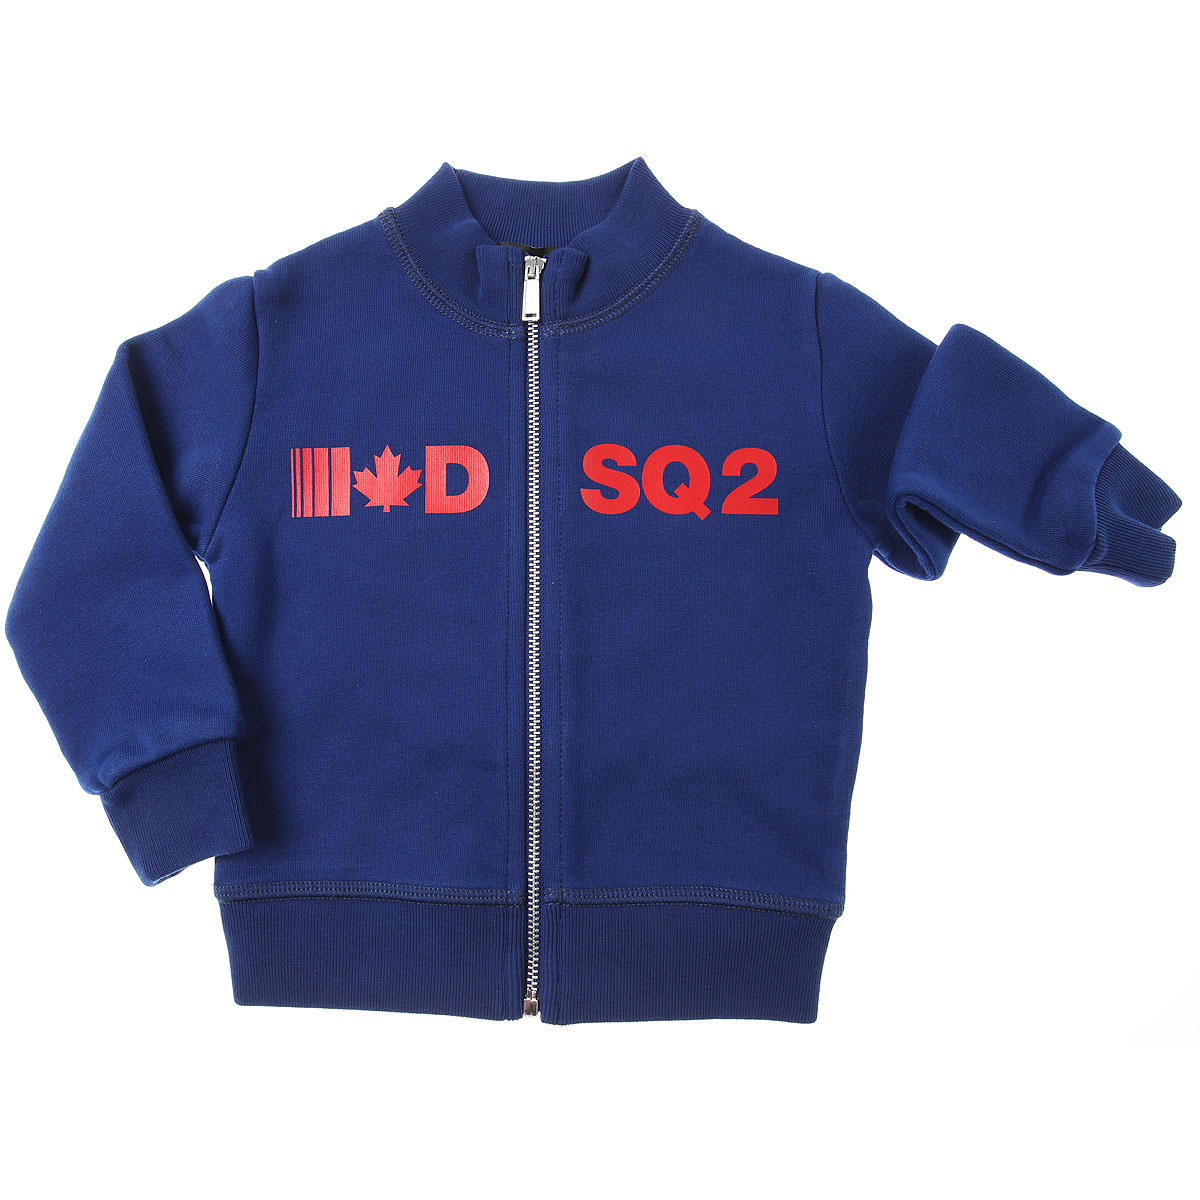 Dsquared2 Baby Sweatshirts & Hoodies for Boys On Sale, Electric Blue, Cotton, 2019, 12 M 6M 9M